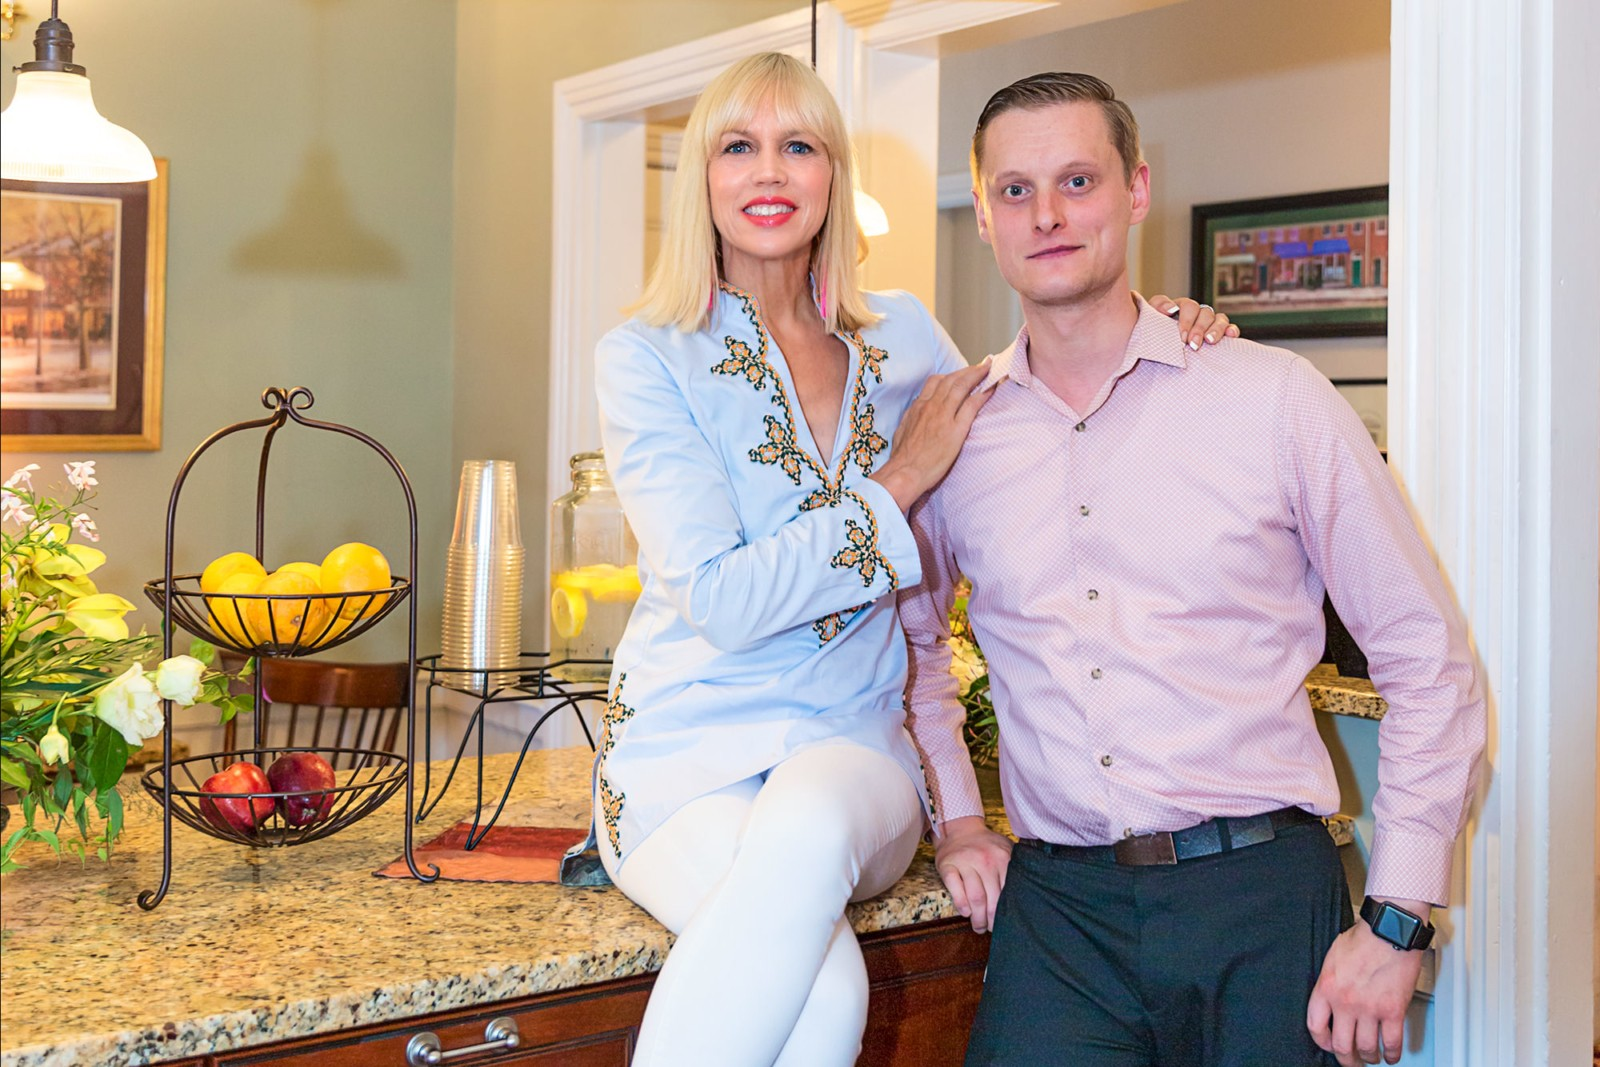 CatherineGraceO Essex Street Inn with Manager Alexander Thompson